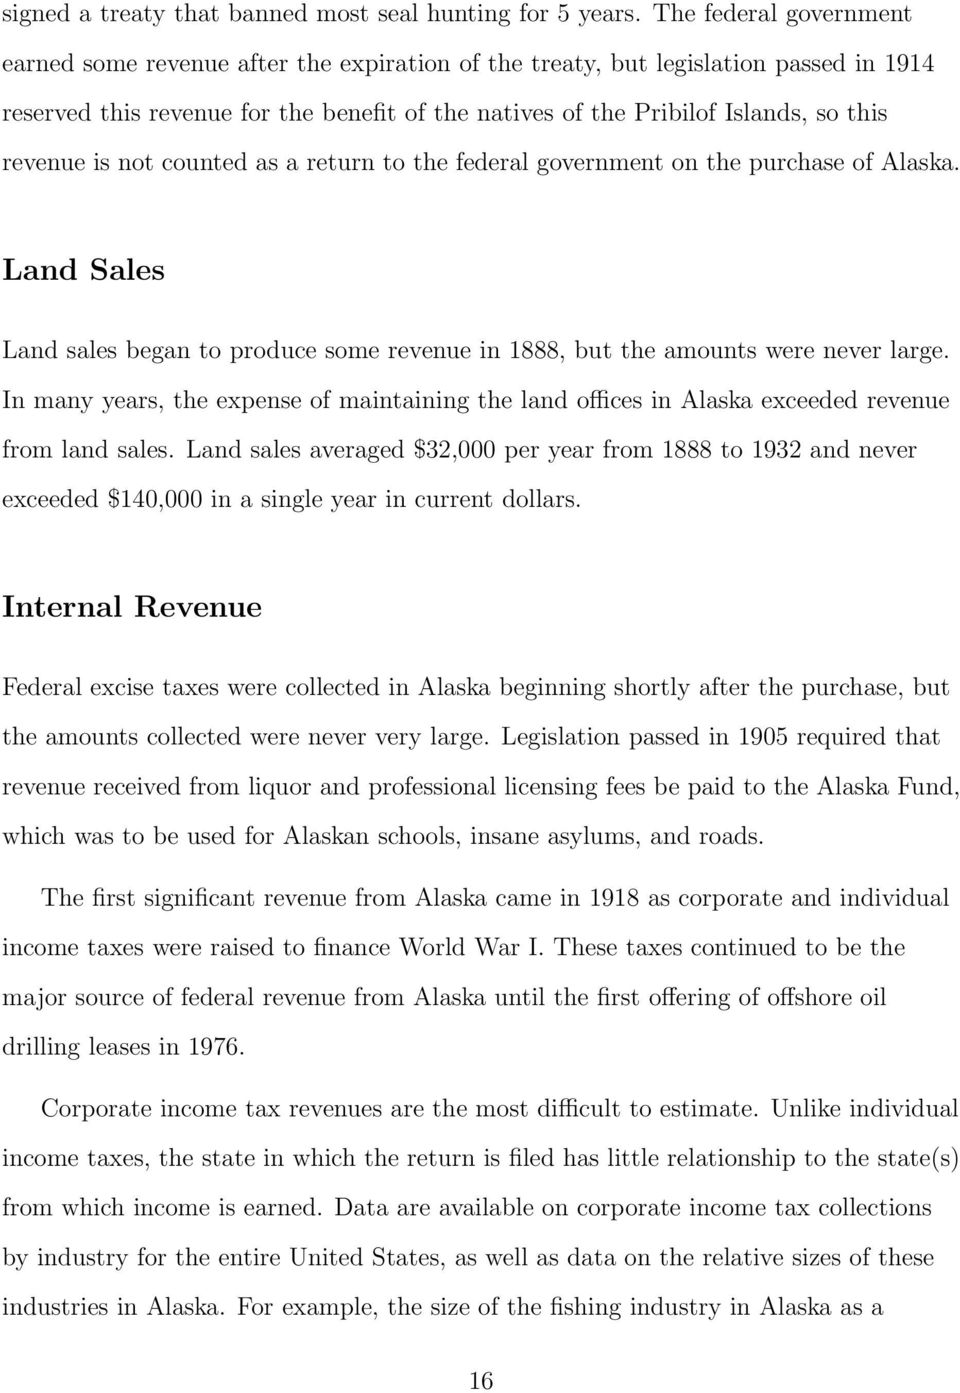 revenue is not counted as a return to the federal government on the purchase of Alaska. Land Sales Land sales began to produce some revenue in 1888, but the amounts were never large.